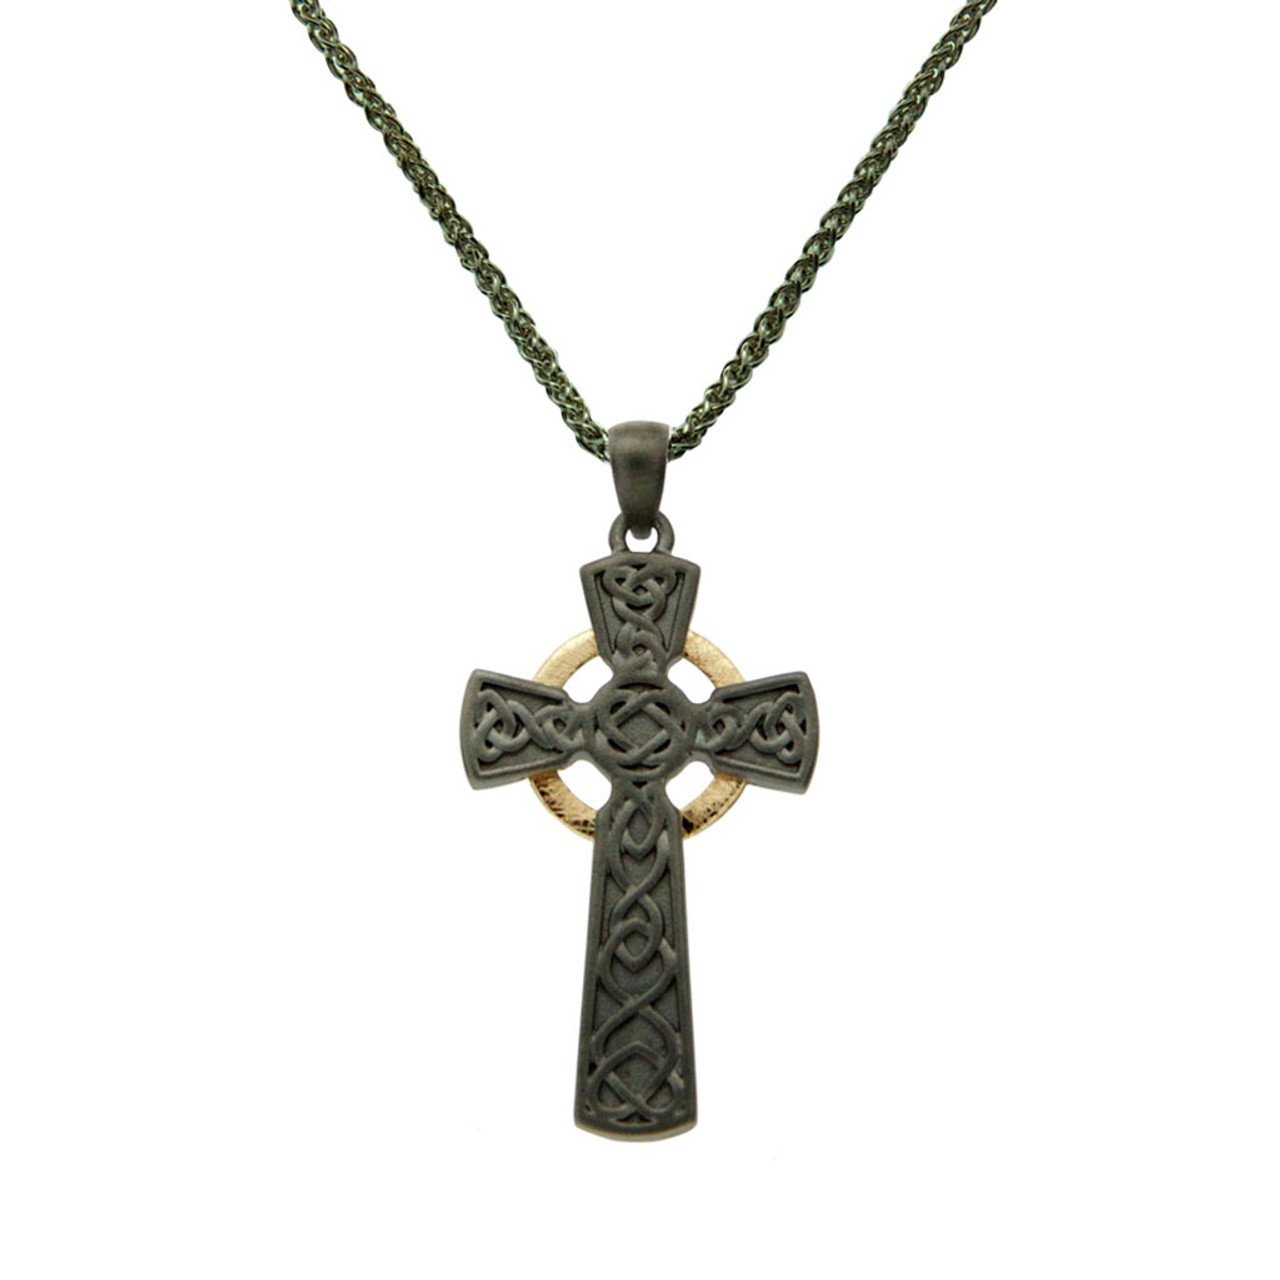 products men cross usa shipping hammy celtic in knots woot reo with irish large free necklace the